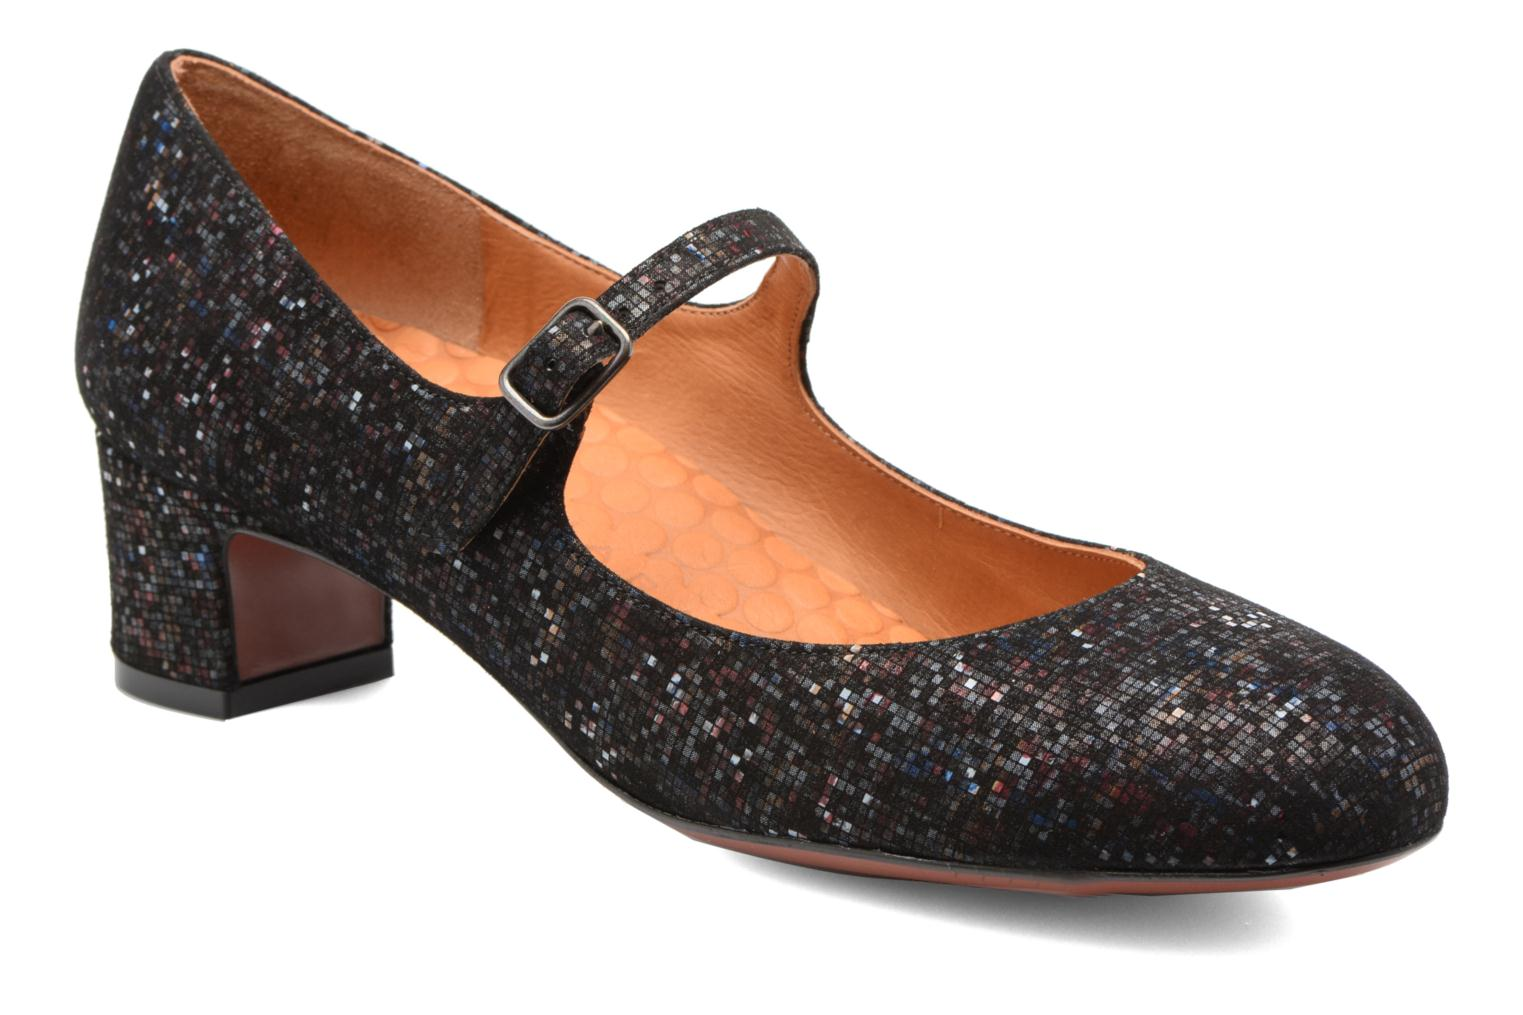 Marques Chaussure luxe femme Chie Mihara femme Nead Tweet Multi